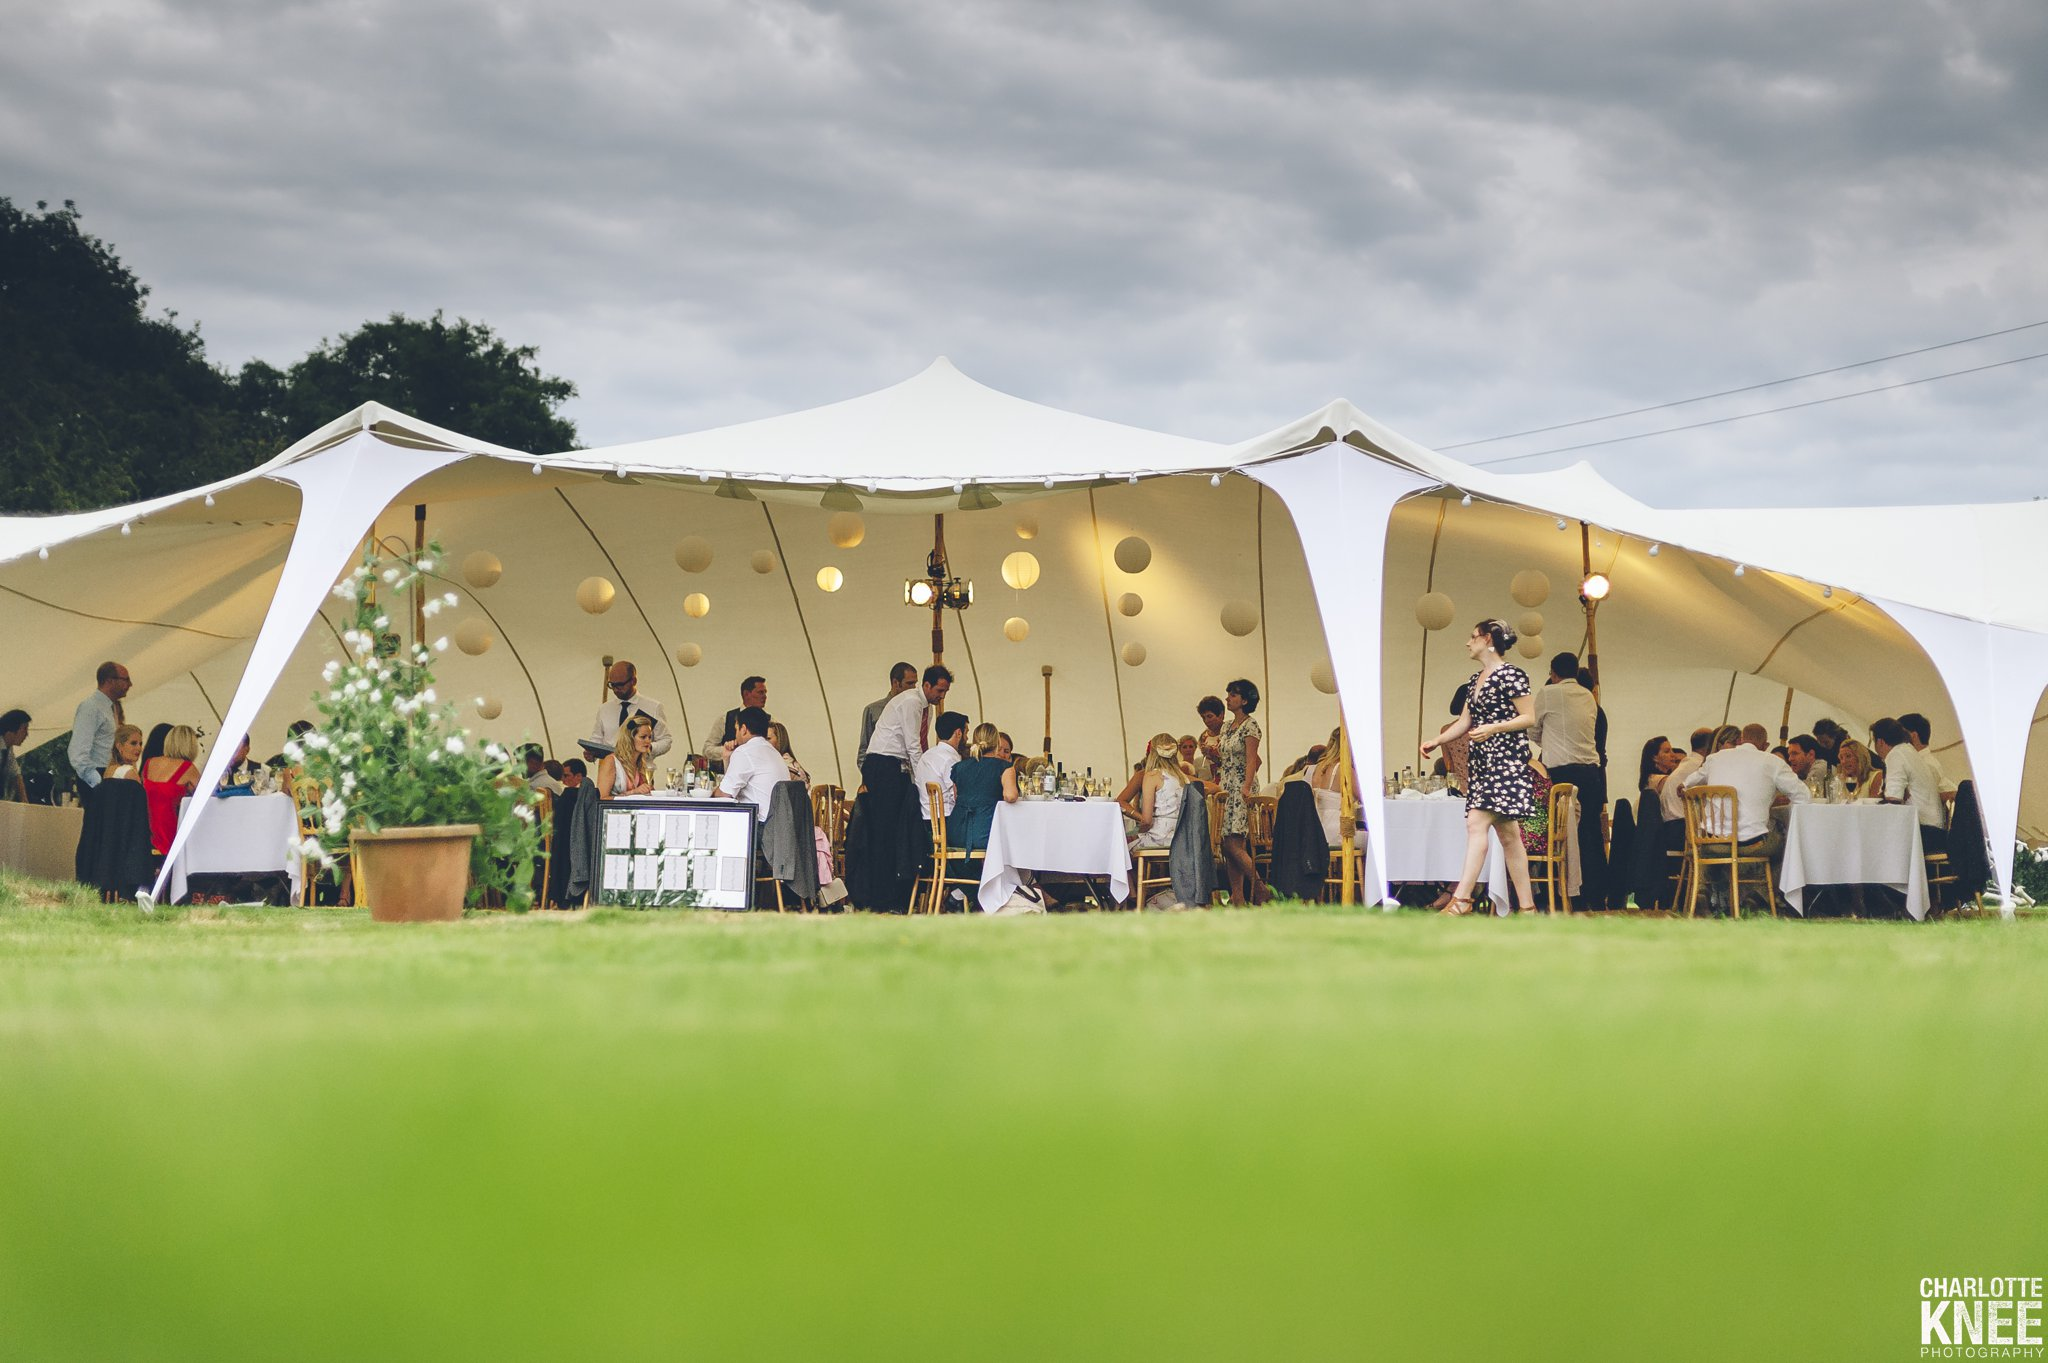 4Elements Tents Stretch Tent Kent Wedding Charlotte Knee Photography_0004.jpg & Charlotte Knee Photography » Kent lifestyle photographer with a ...